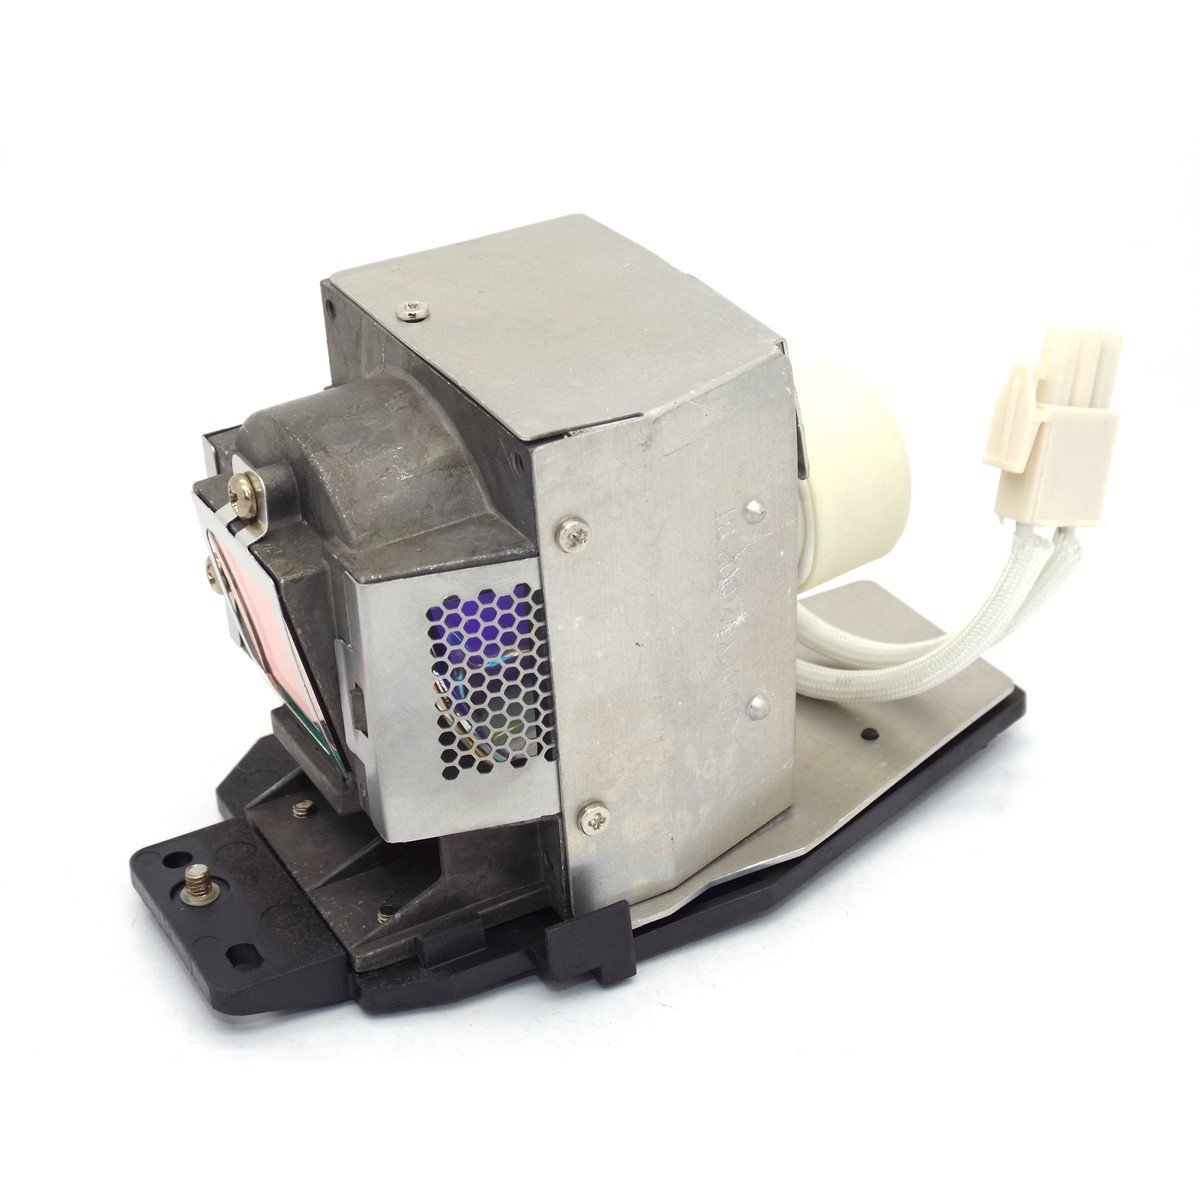 Sunbows Projector Lamp Fit for VIEWSONIC RLC-057 PJD7382 Projector